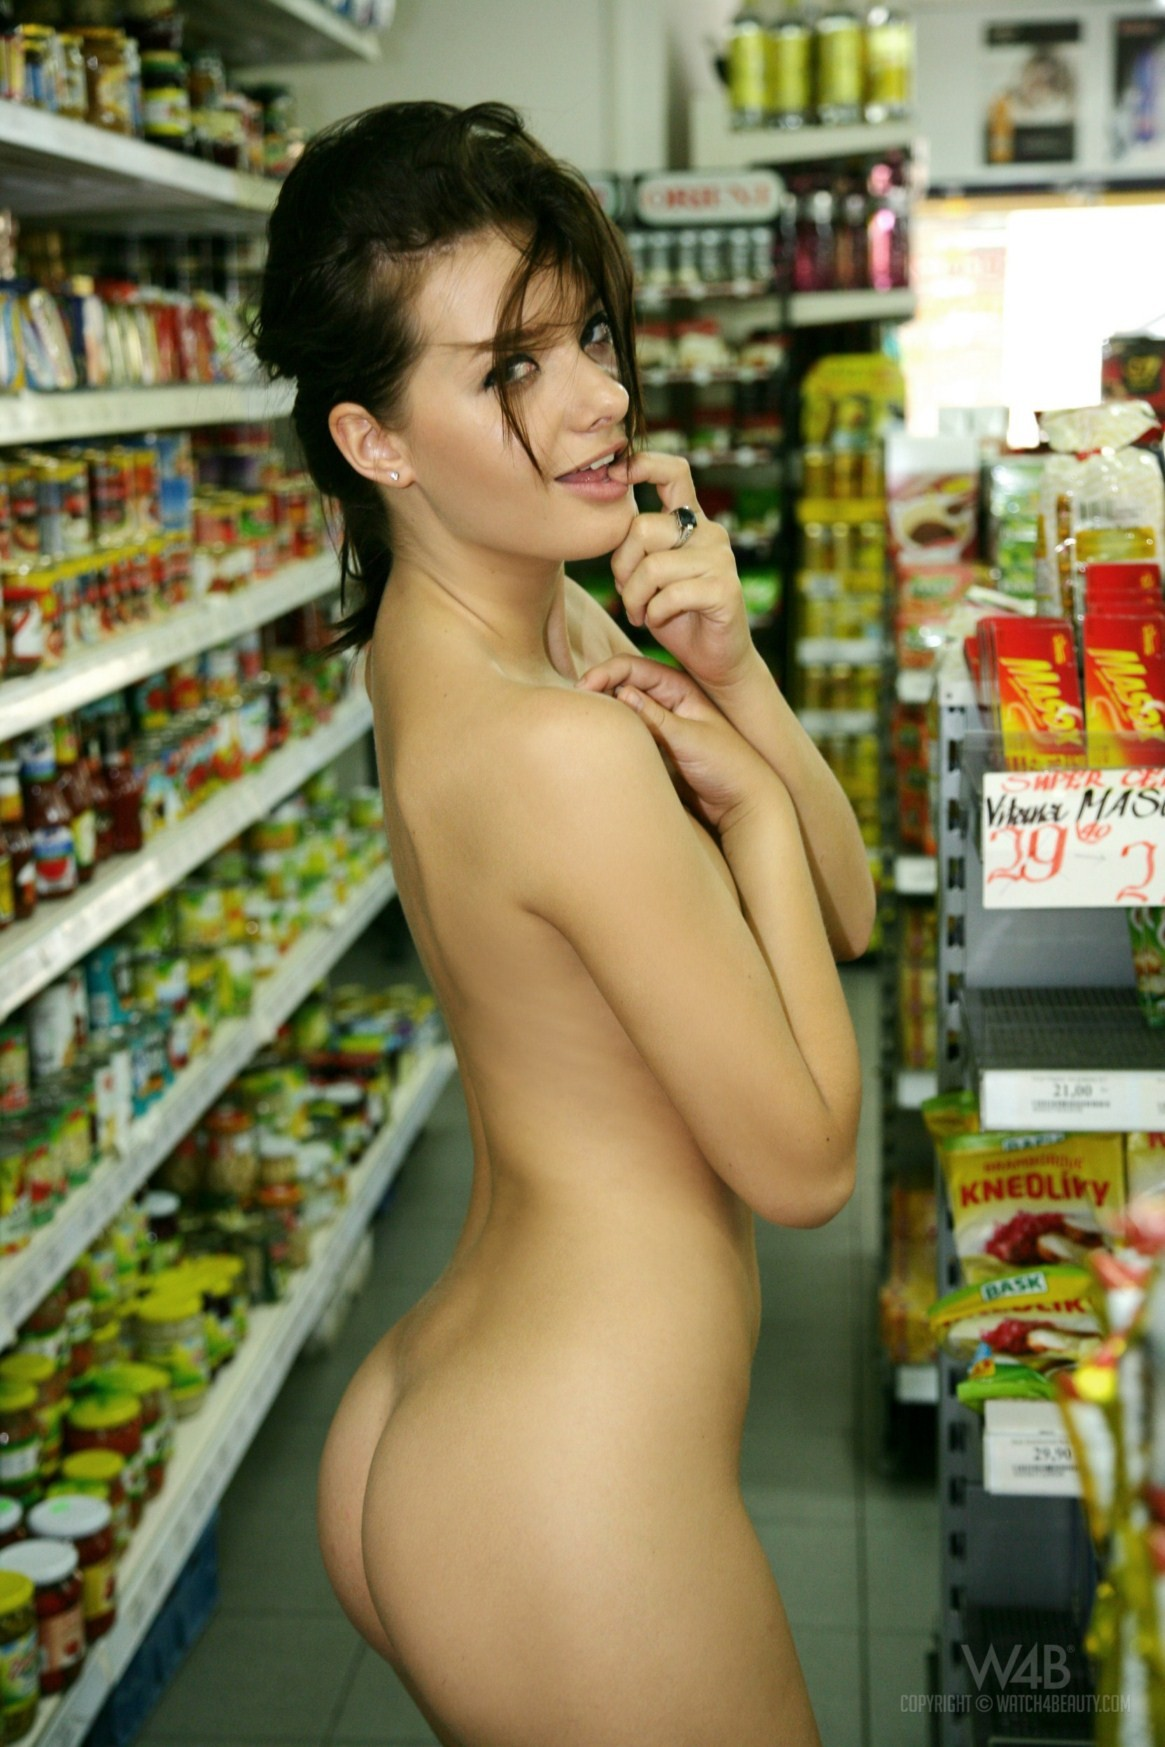 Magnificent girls nude grocery shopping